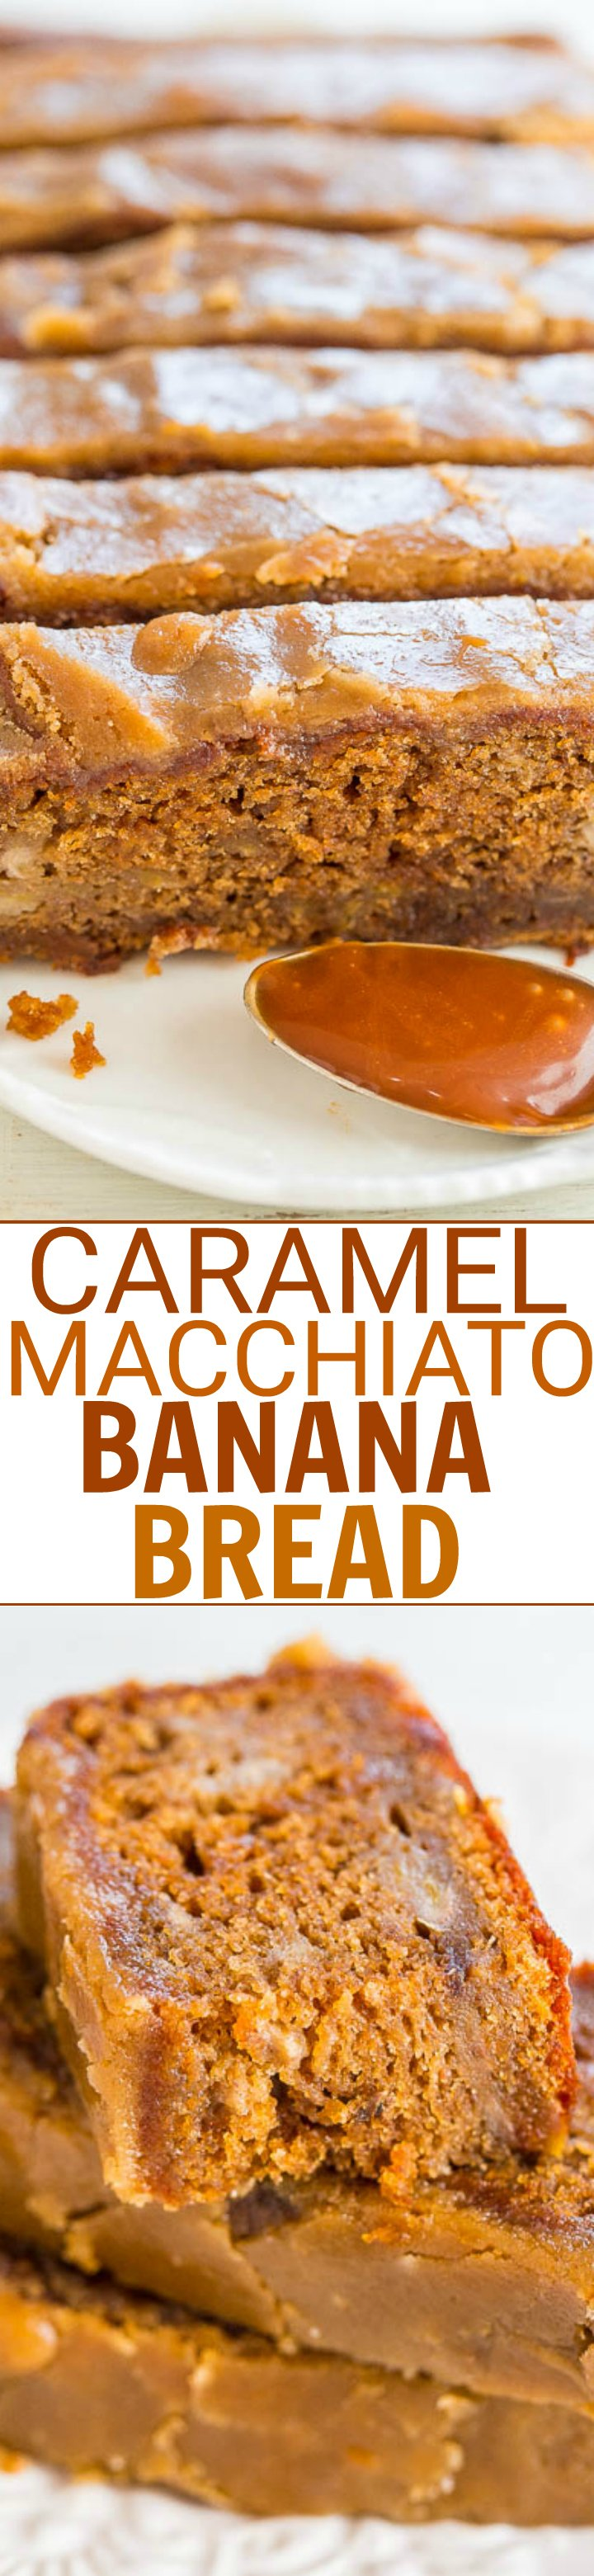 Caramel Macchiato Banana Bread — Caramel banana bread that tastes like a caramel macchiato!! Soft, tender, infused with salted CARAMEL and topped with a brown sugar glaze!! EASY and IRRESISTIBLE!!